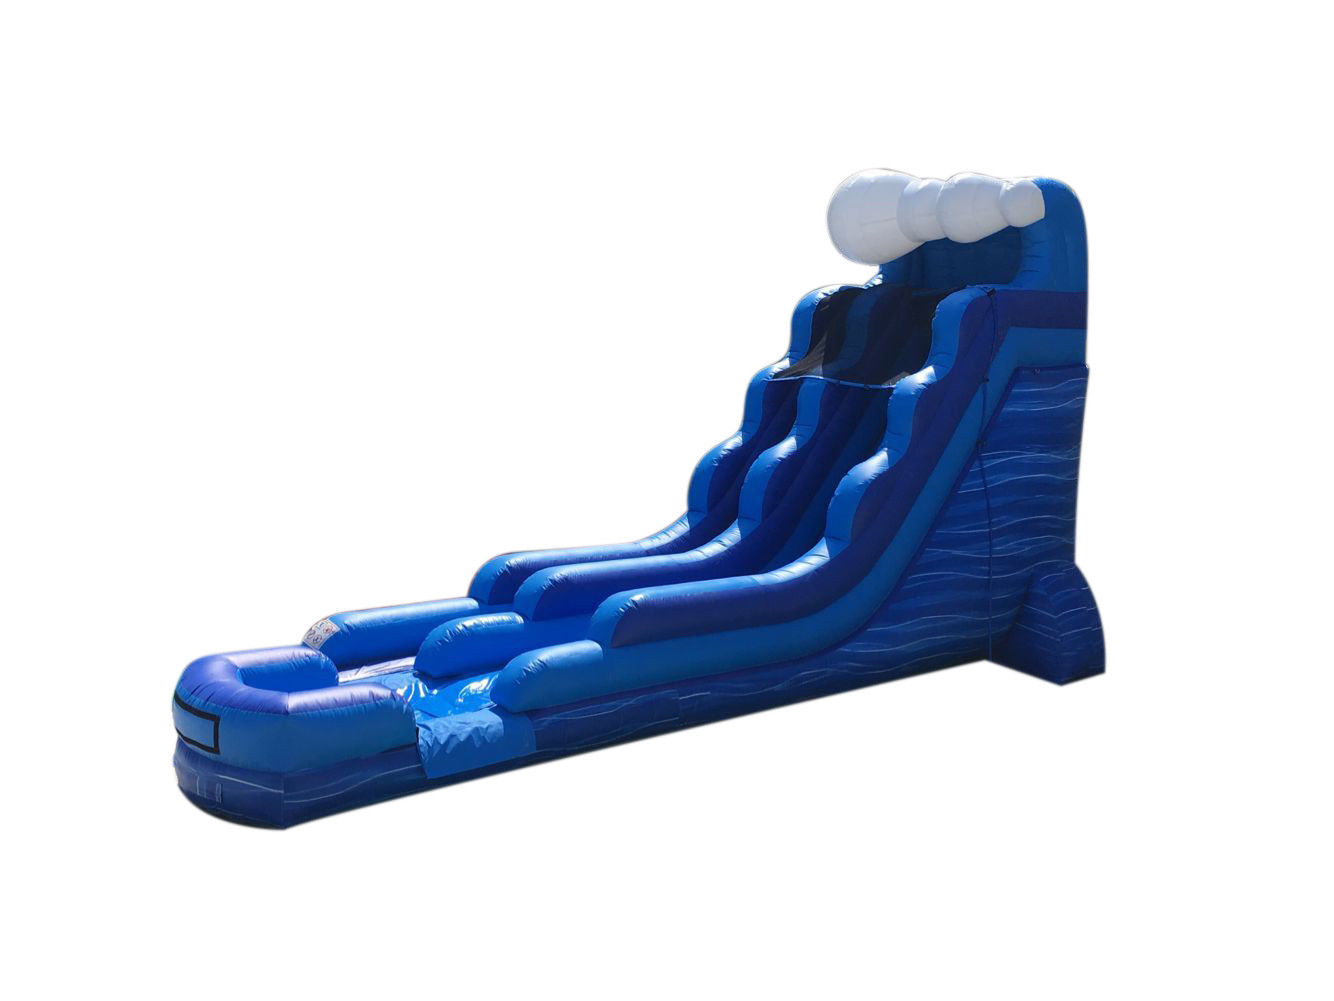 waterslide_rentals_new_hampshire_maine